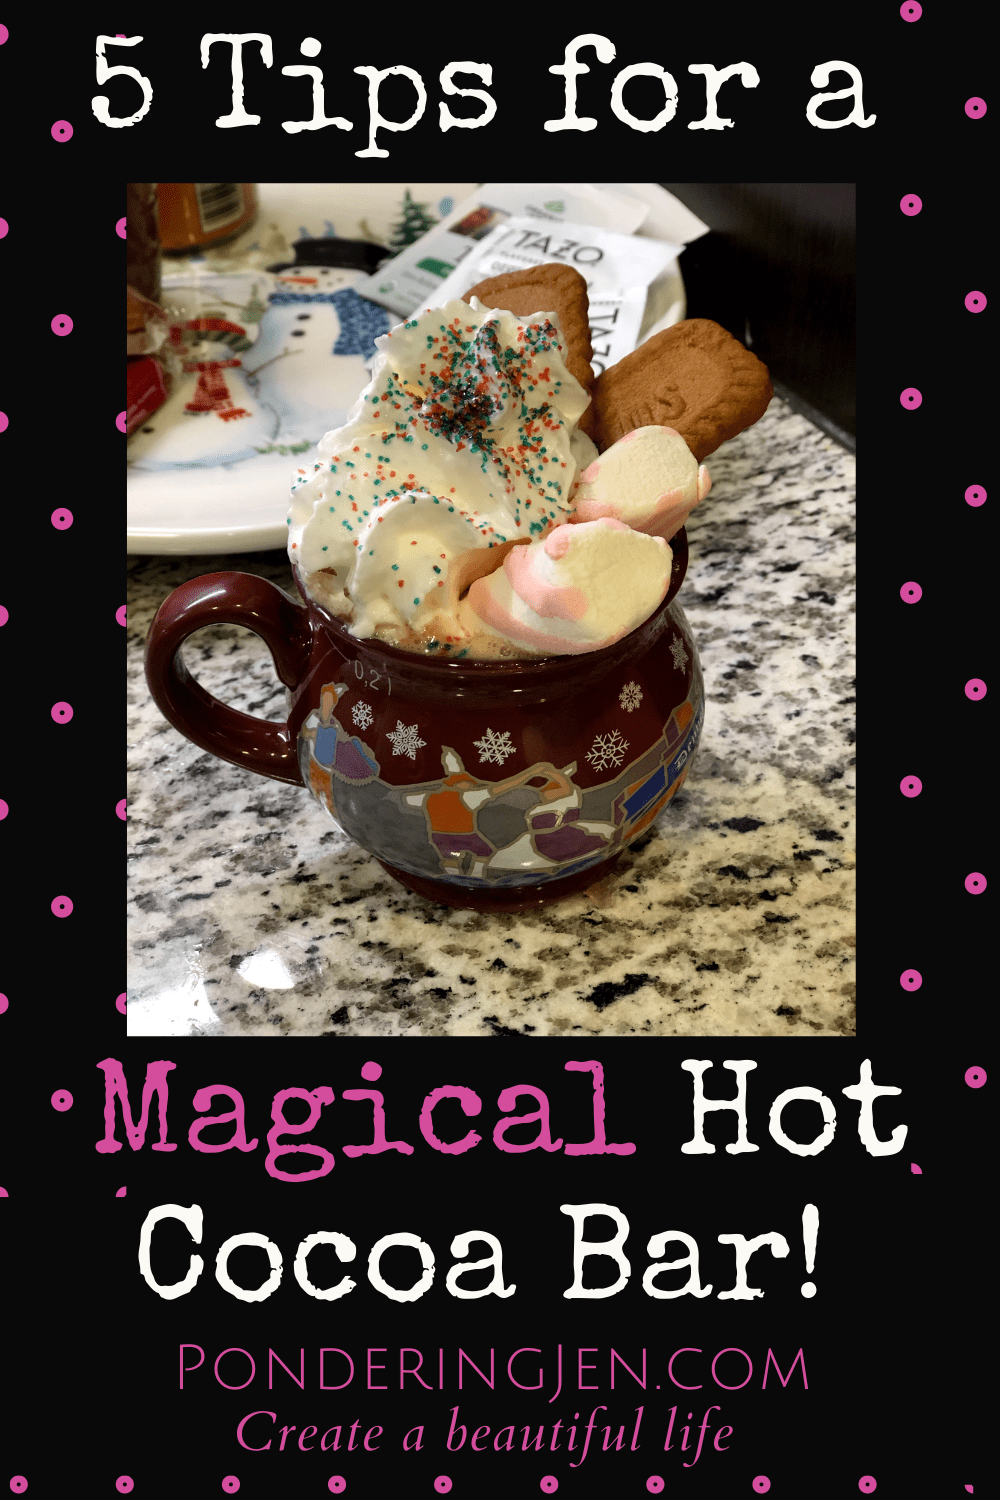 mug of hot cocoa with text 5 tips for a magical hot cocoa bar